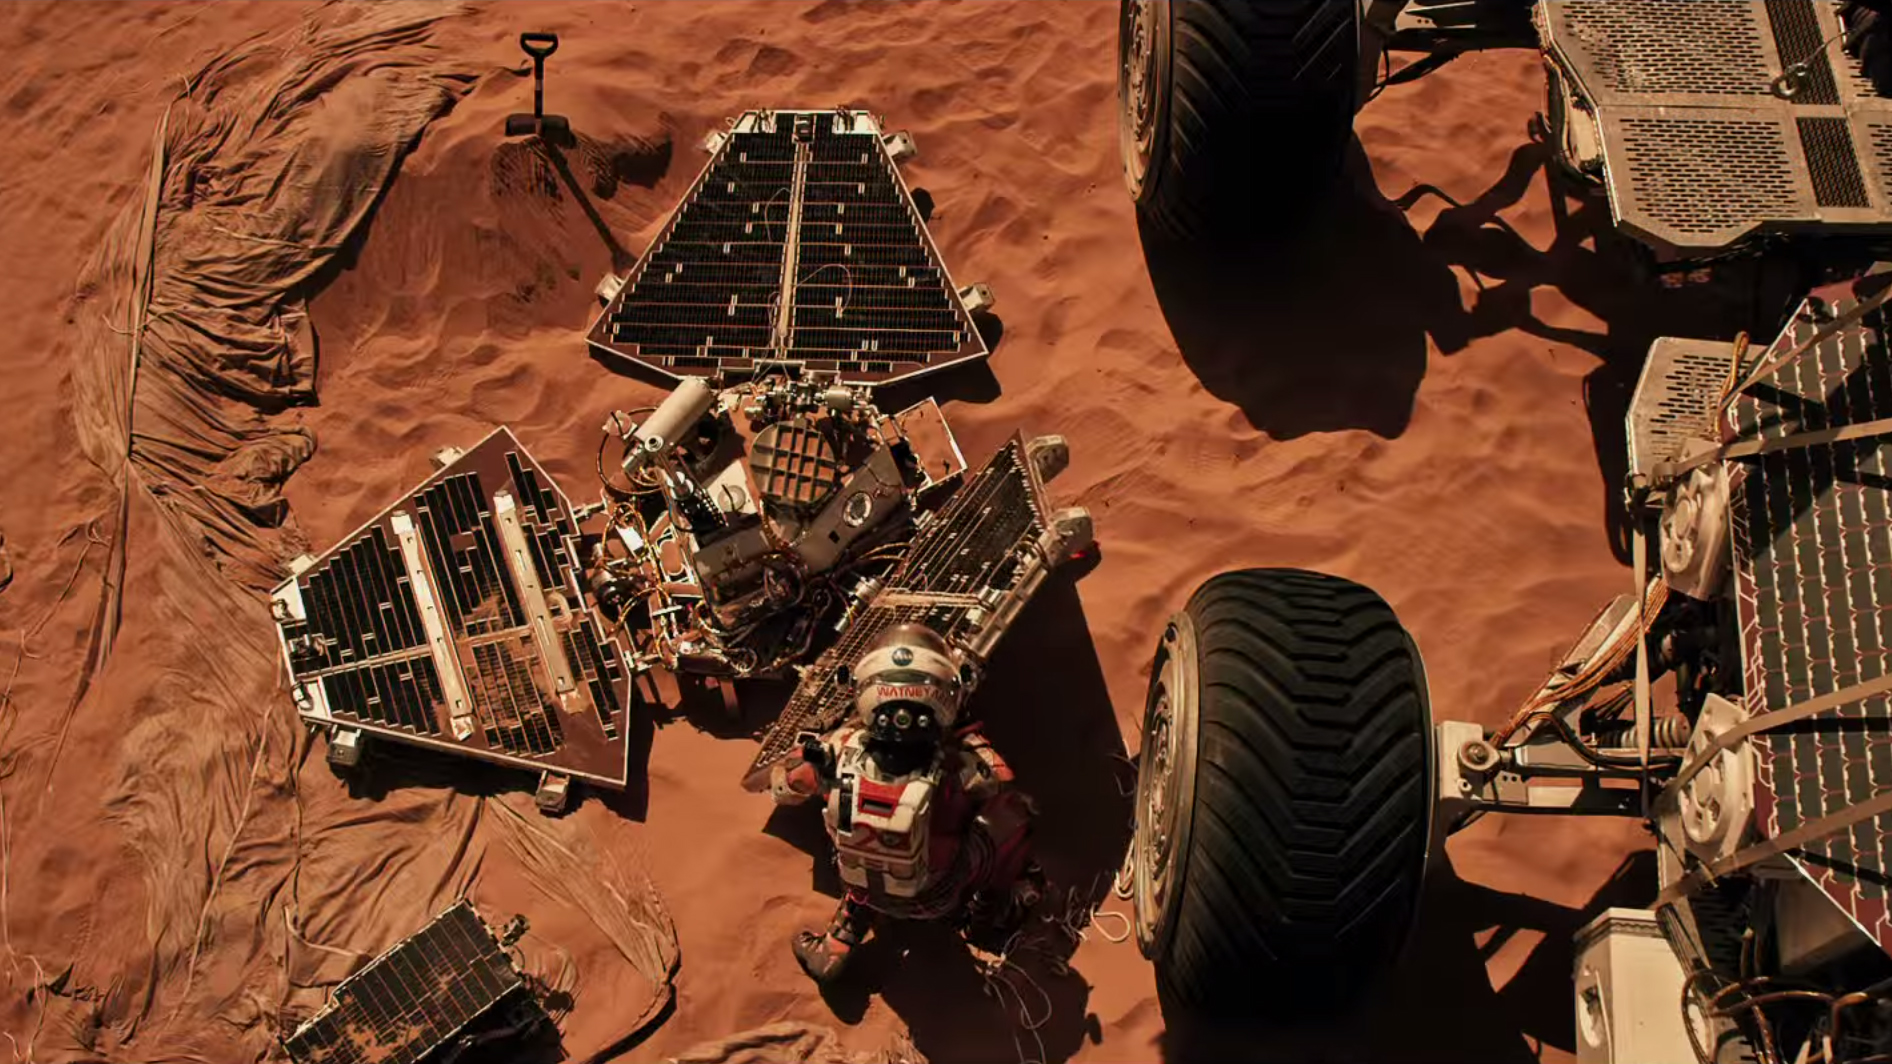 Jpl S Role In Making The Martian A Reality Nasa